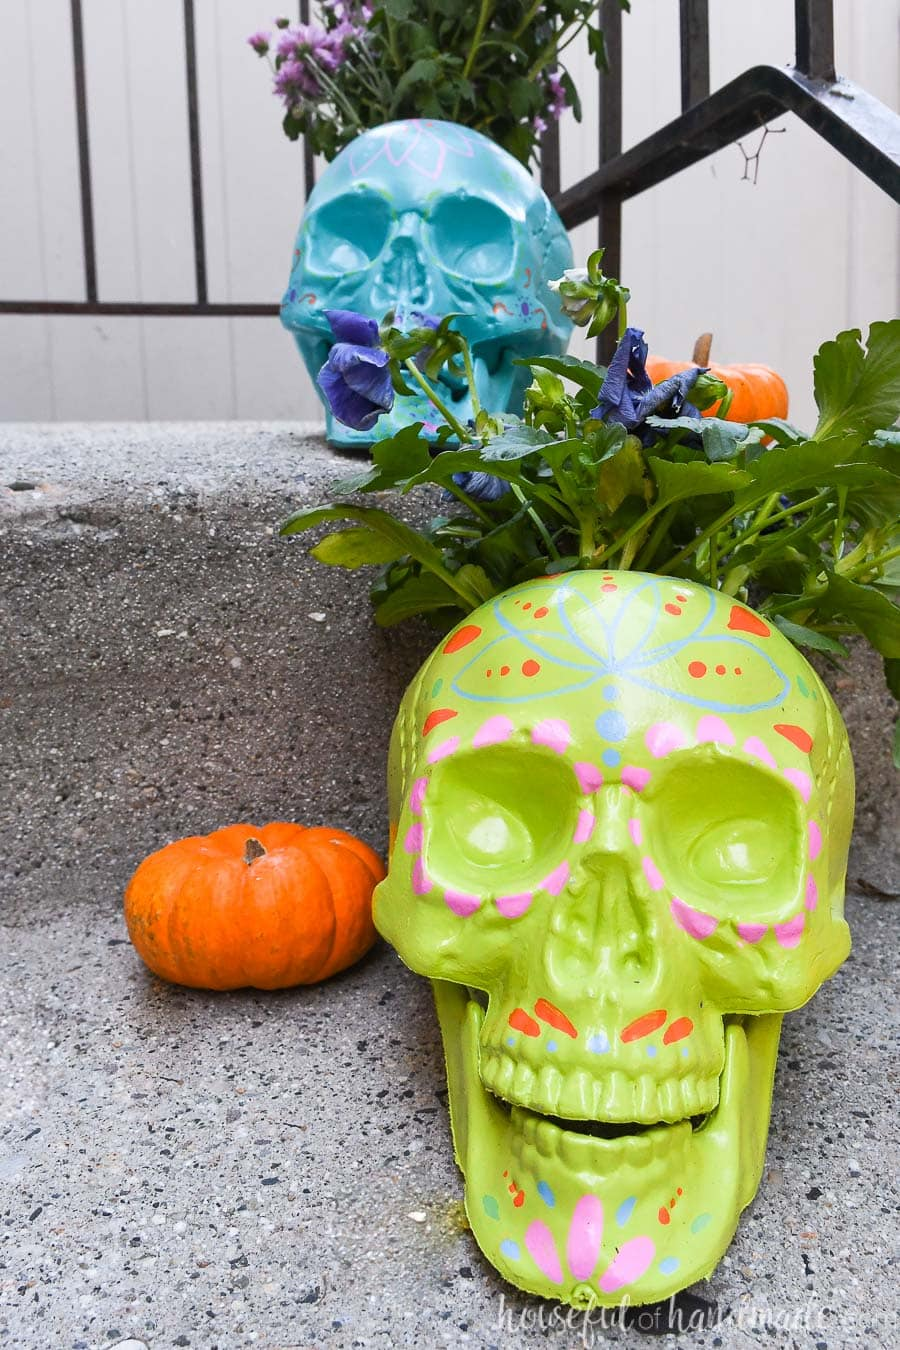 Green and blue sugar skull planters holding fall flowers on a porch.